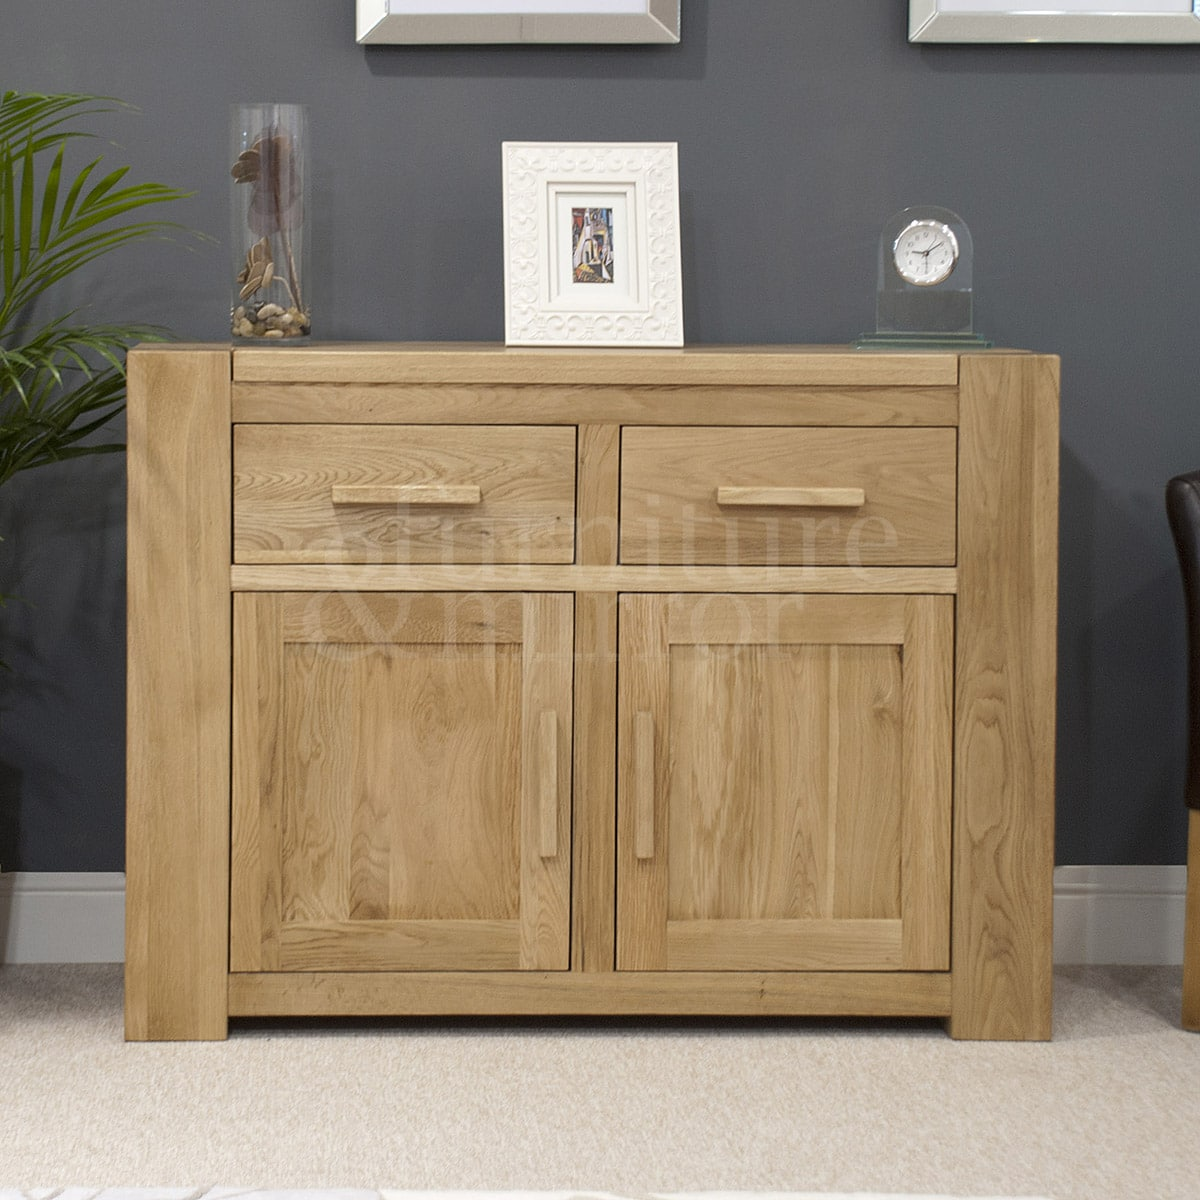 Toulouse Medium Two Door Two Drawer Sideboard 525 00 Toulouse Medium